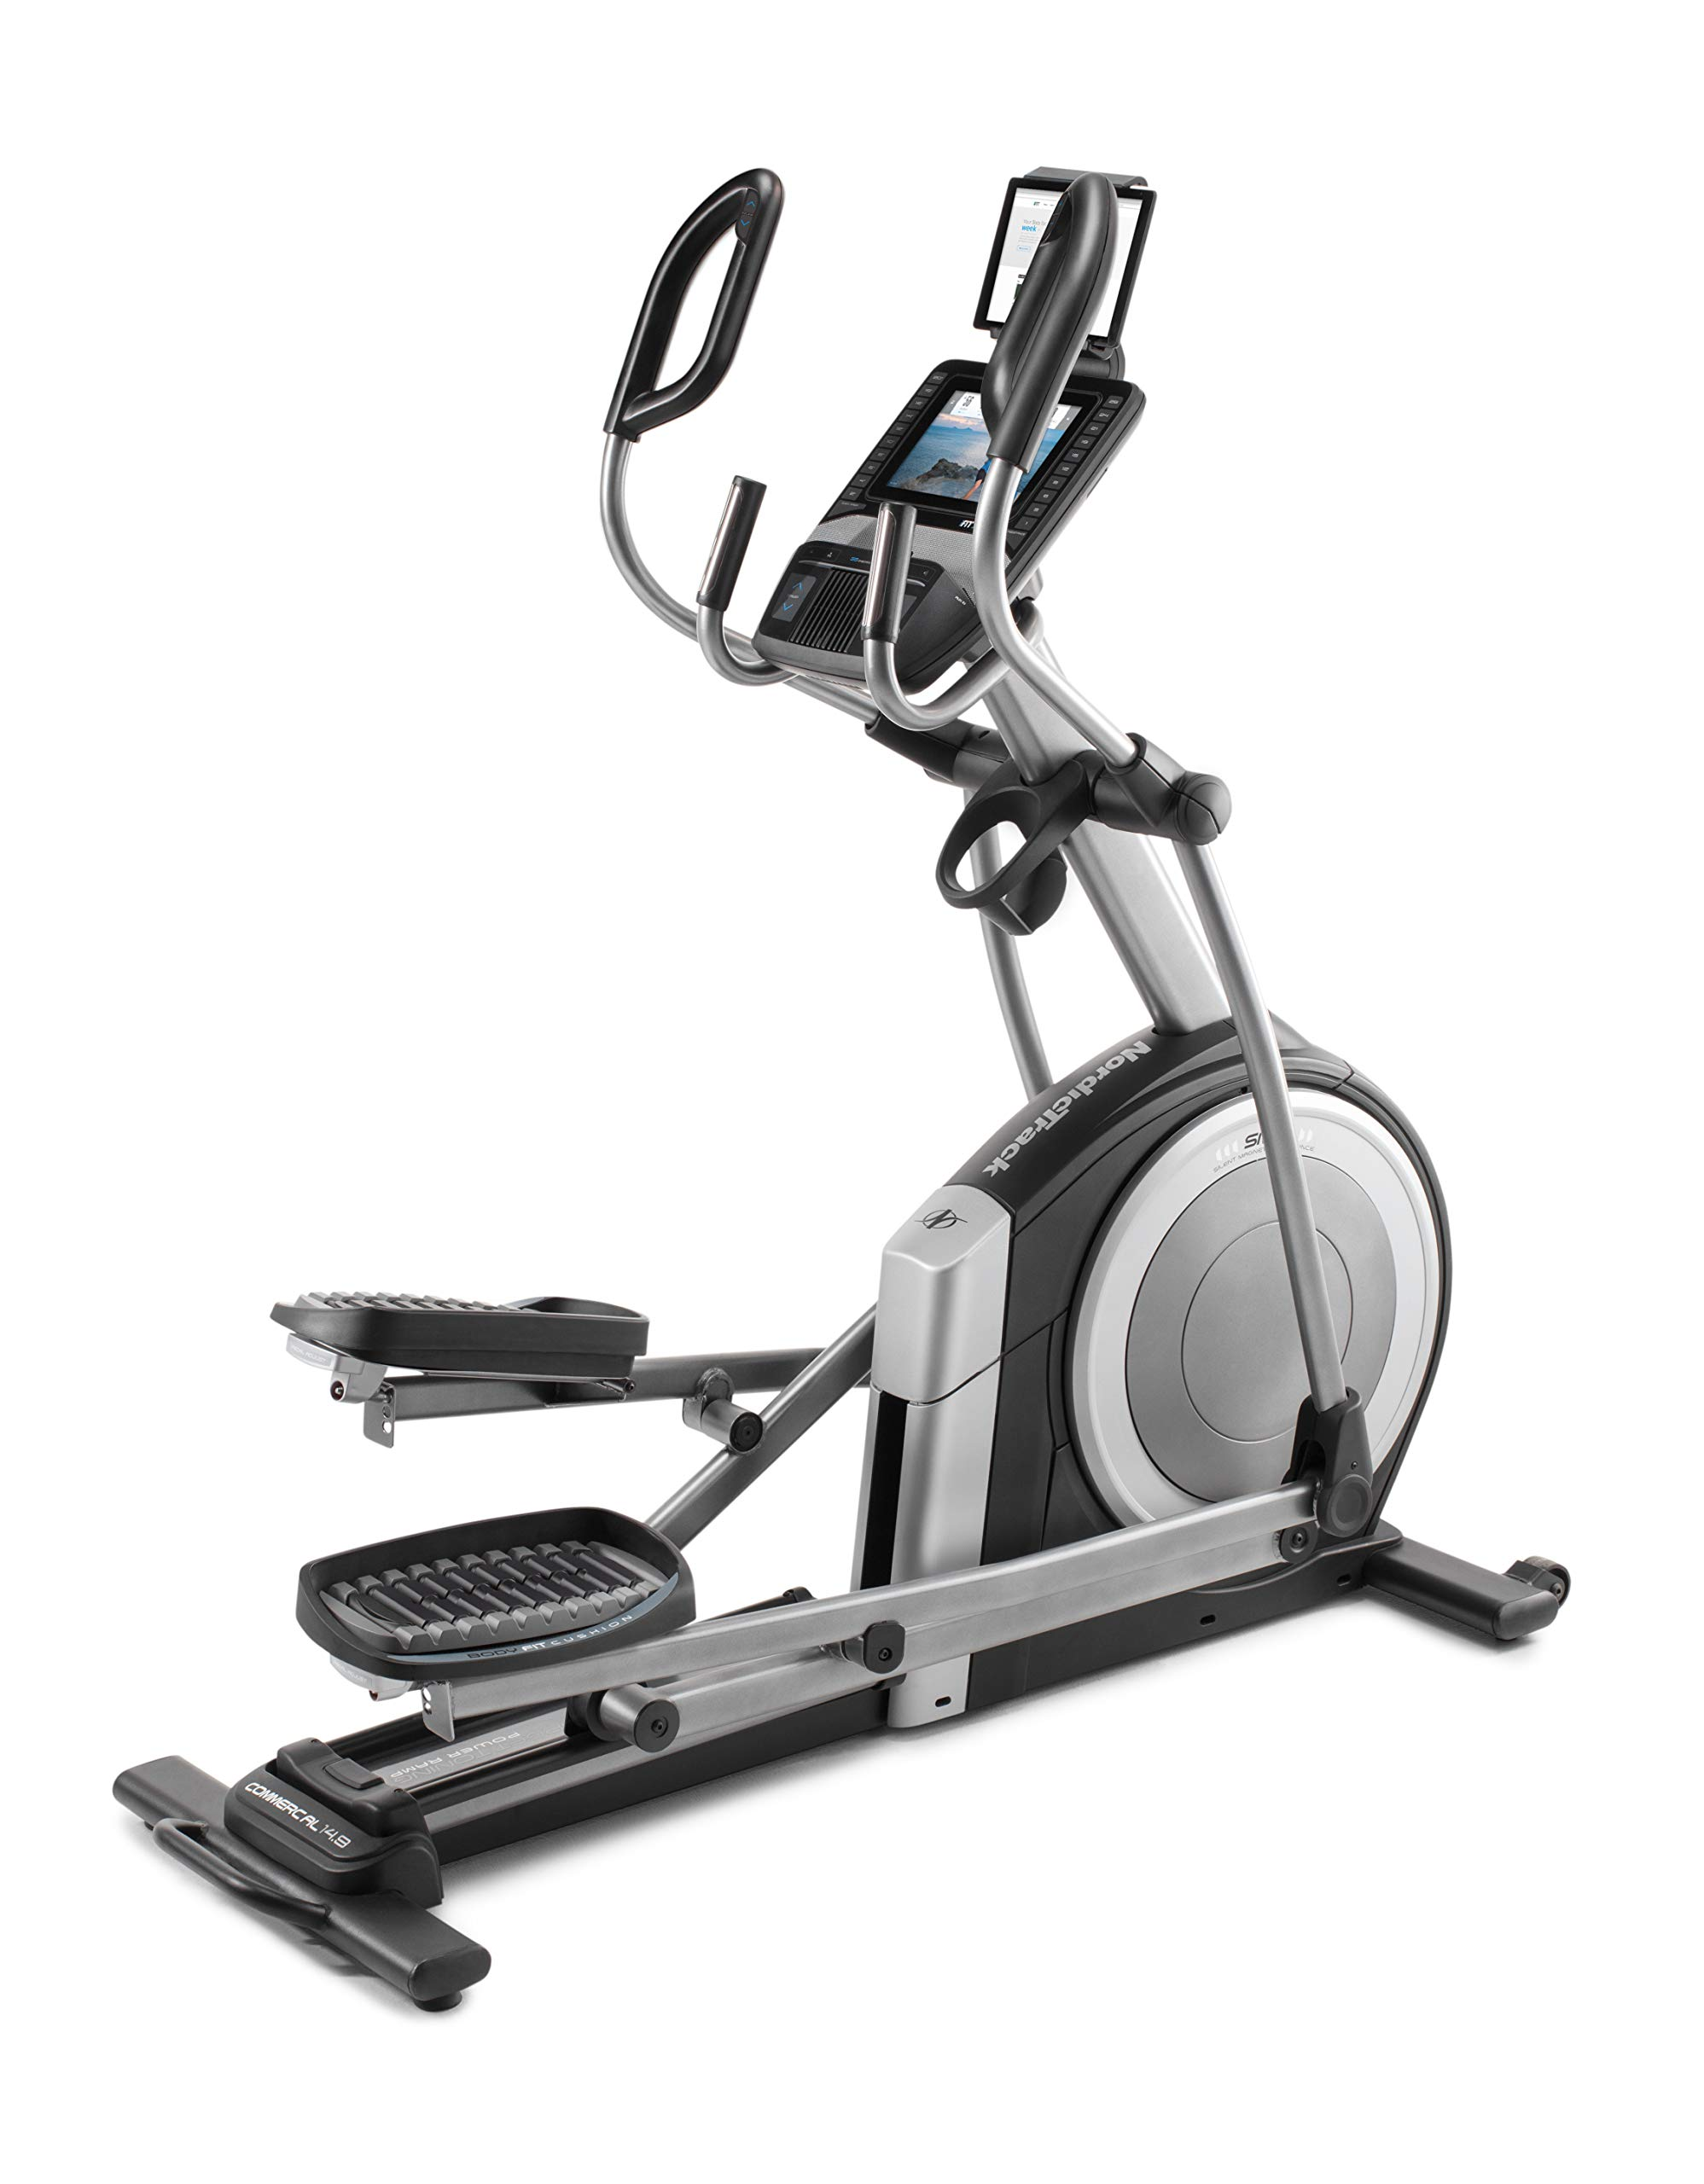 NordicTrack Commercial 14.9 Elliptical Training Machine by NordicTrack